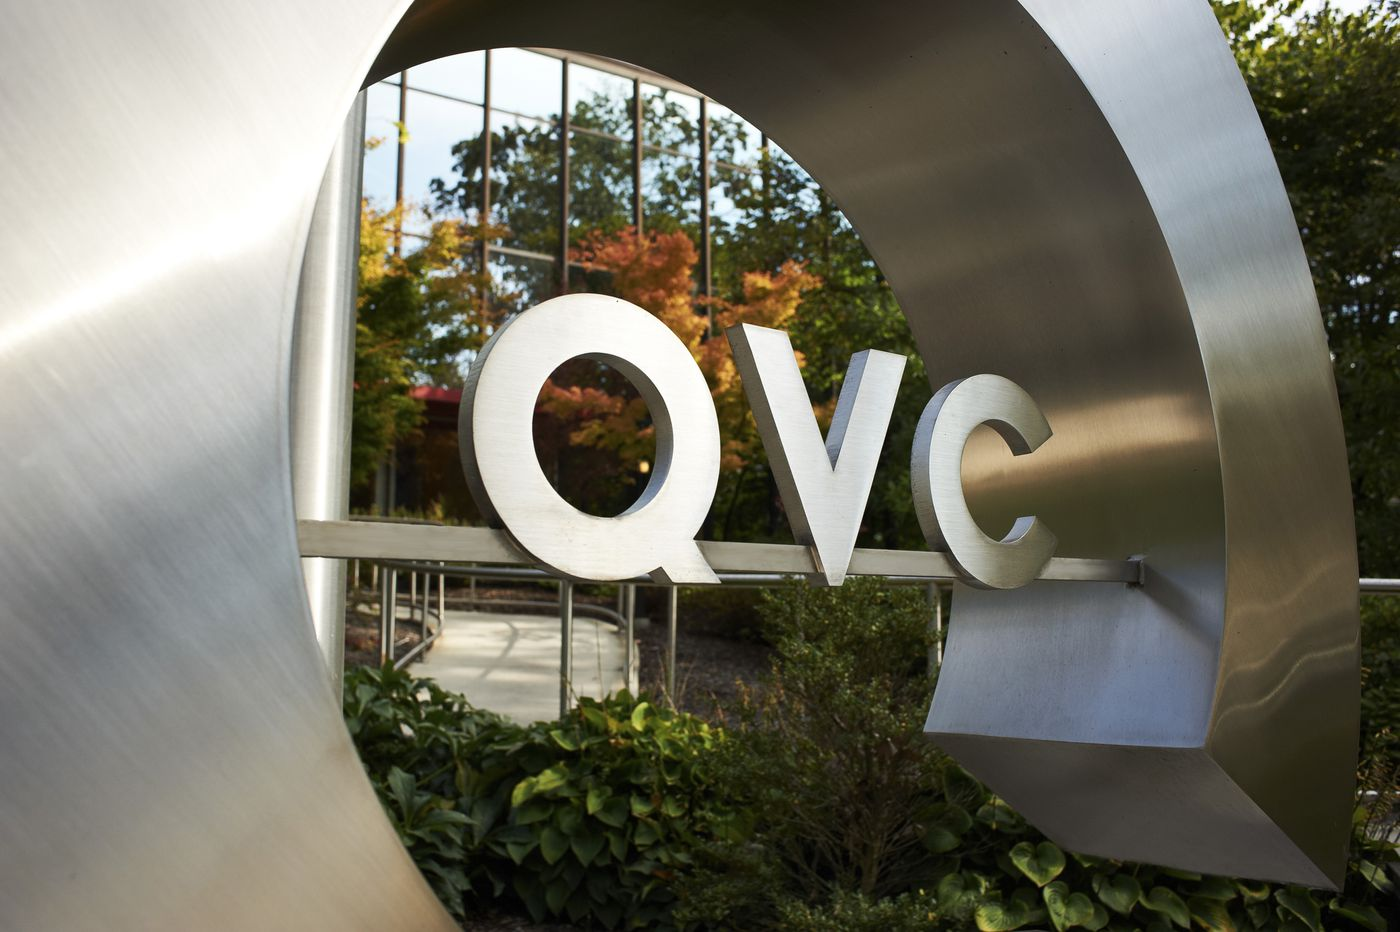 Former QVC exec gets 30 months in prison for bilking $1M from network